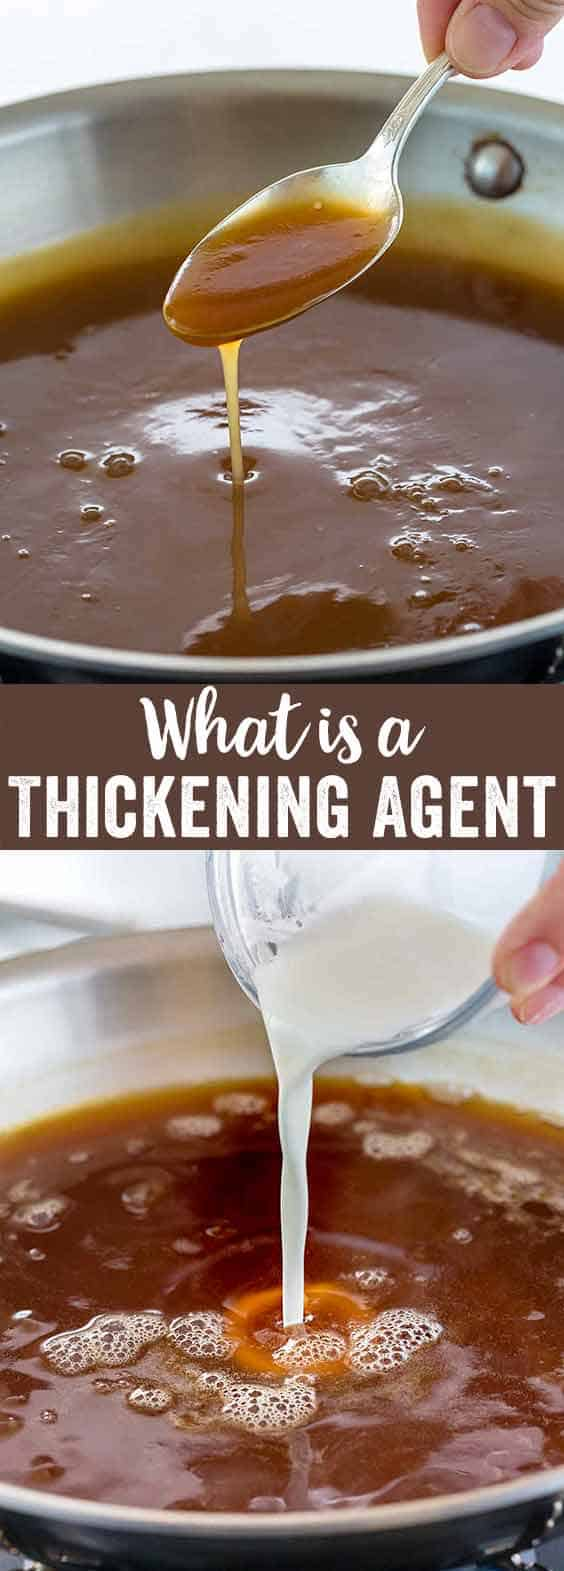 Using a thickening agent can instantly add a creamy and flavorful texture to any savory or sweet recipe. Here's a helpful guide to understanding the process of how cooking starches and gums to a gel-like consistency helps to thicken sauces, stews, and fillings.